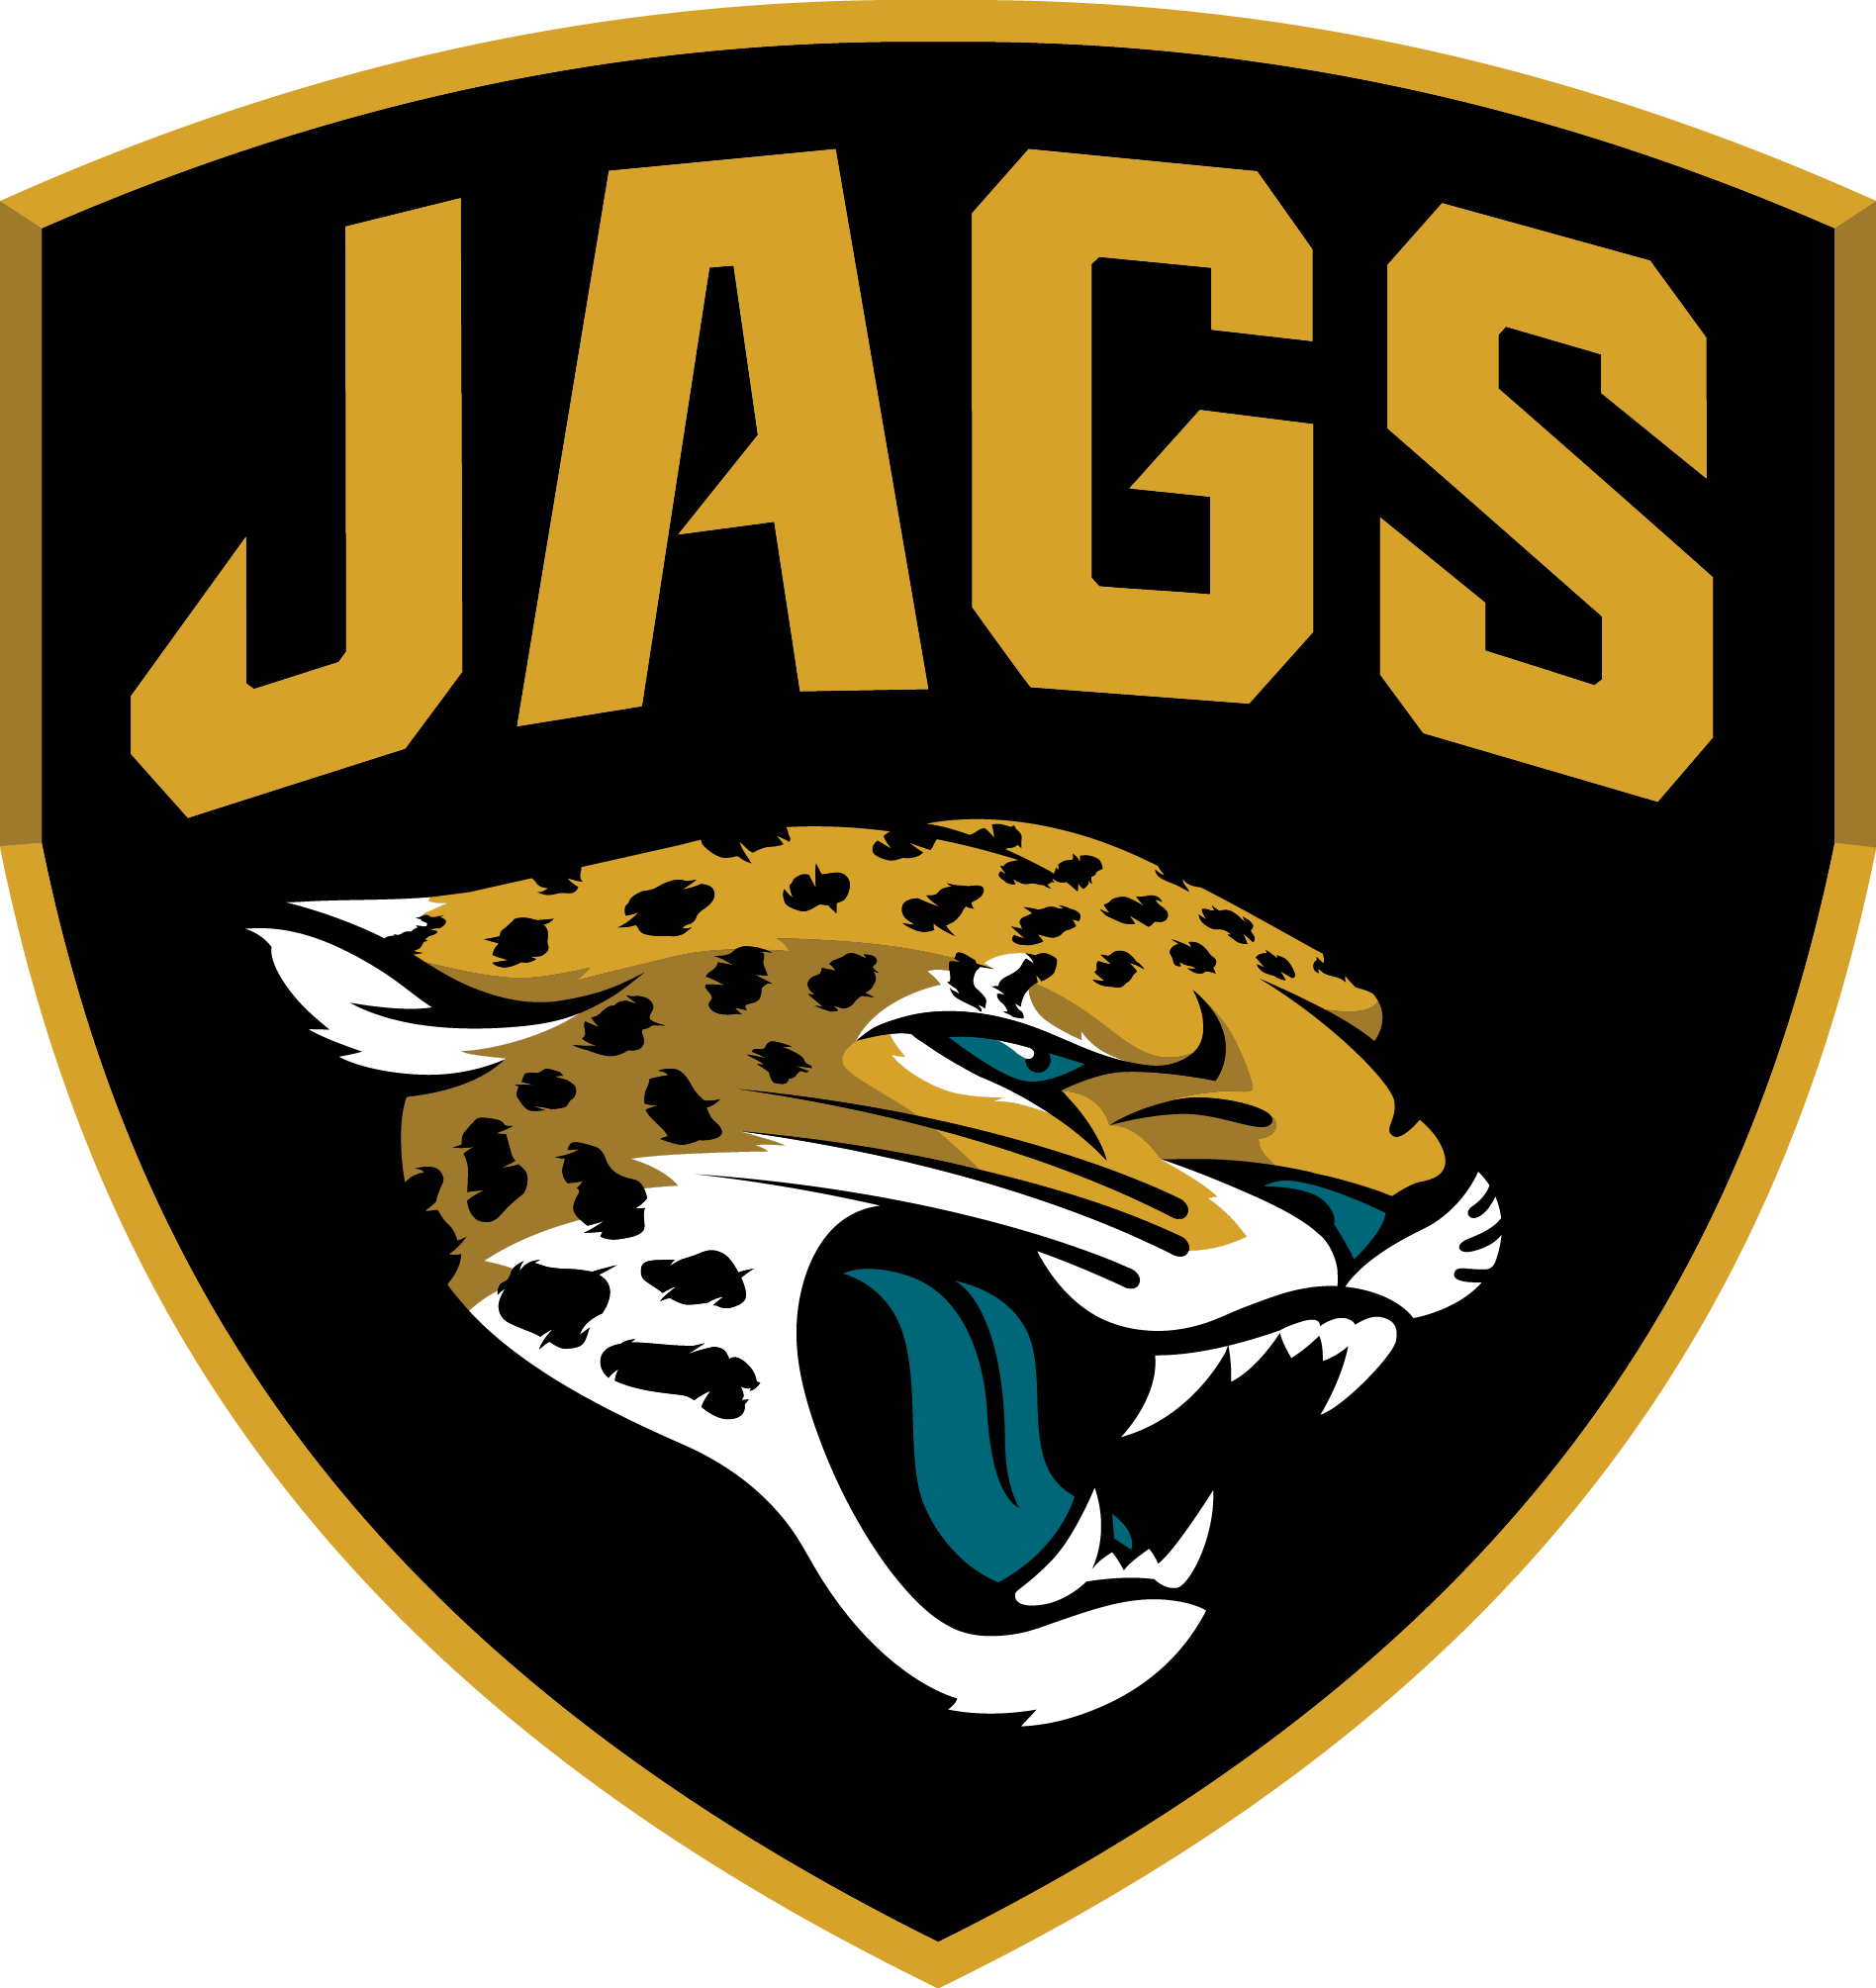 Custom or design Jacksonville Jaguars logo Iron On Decals